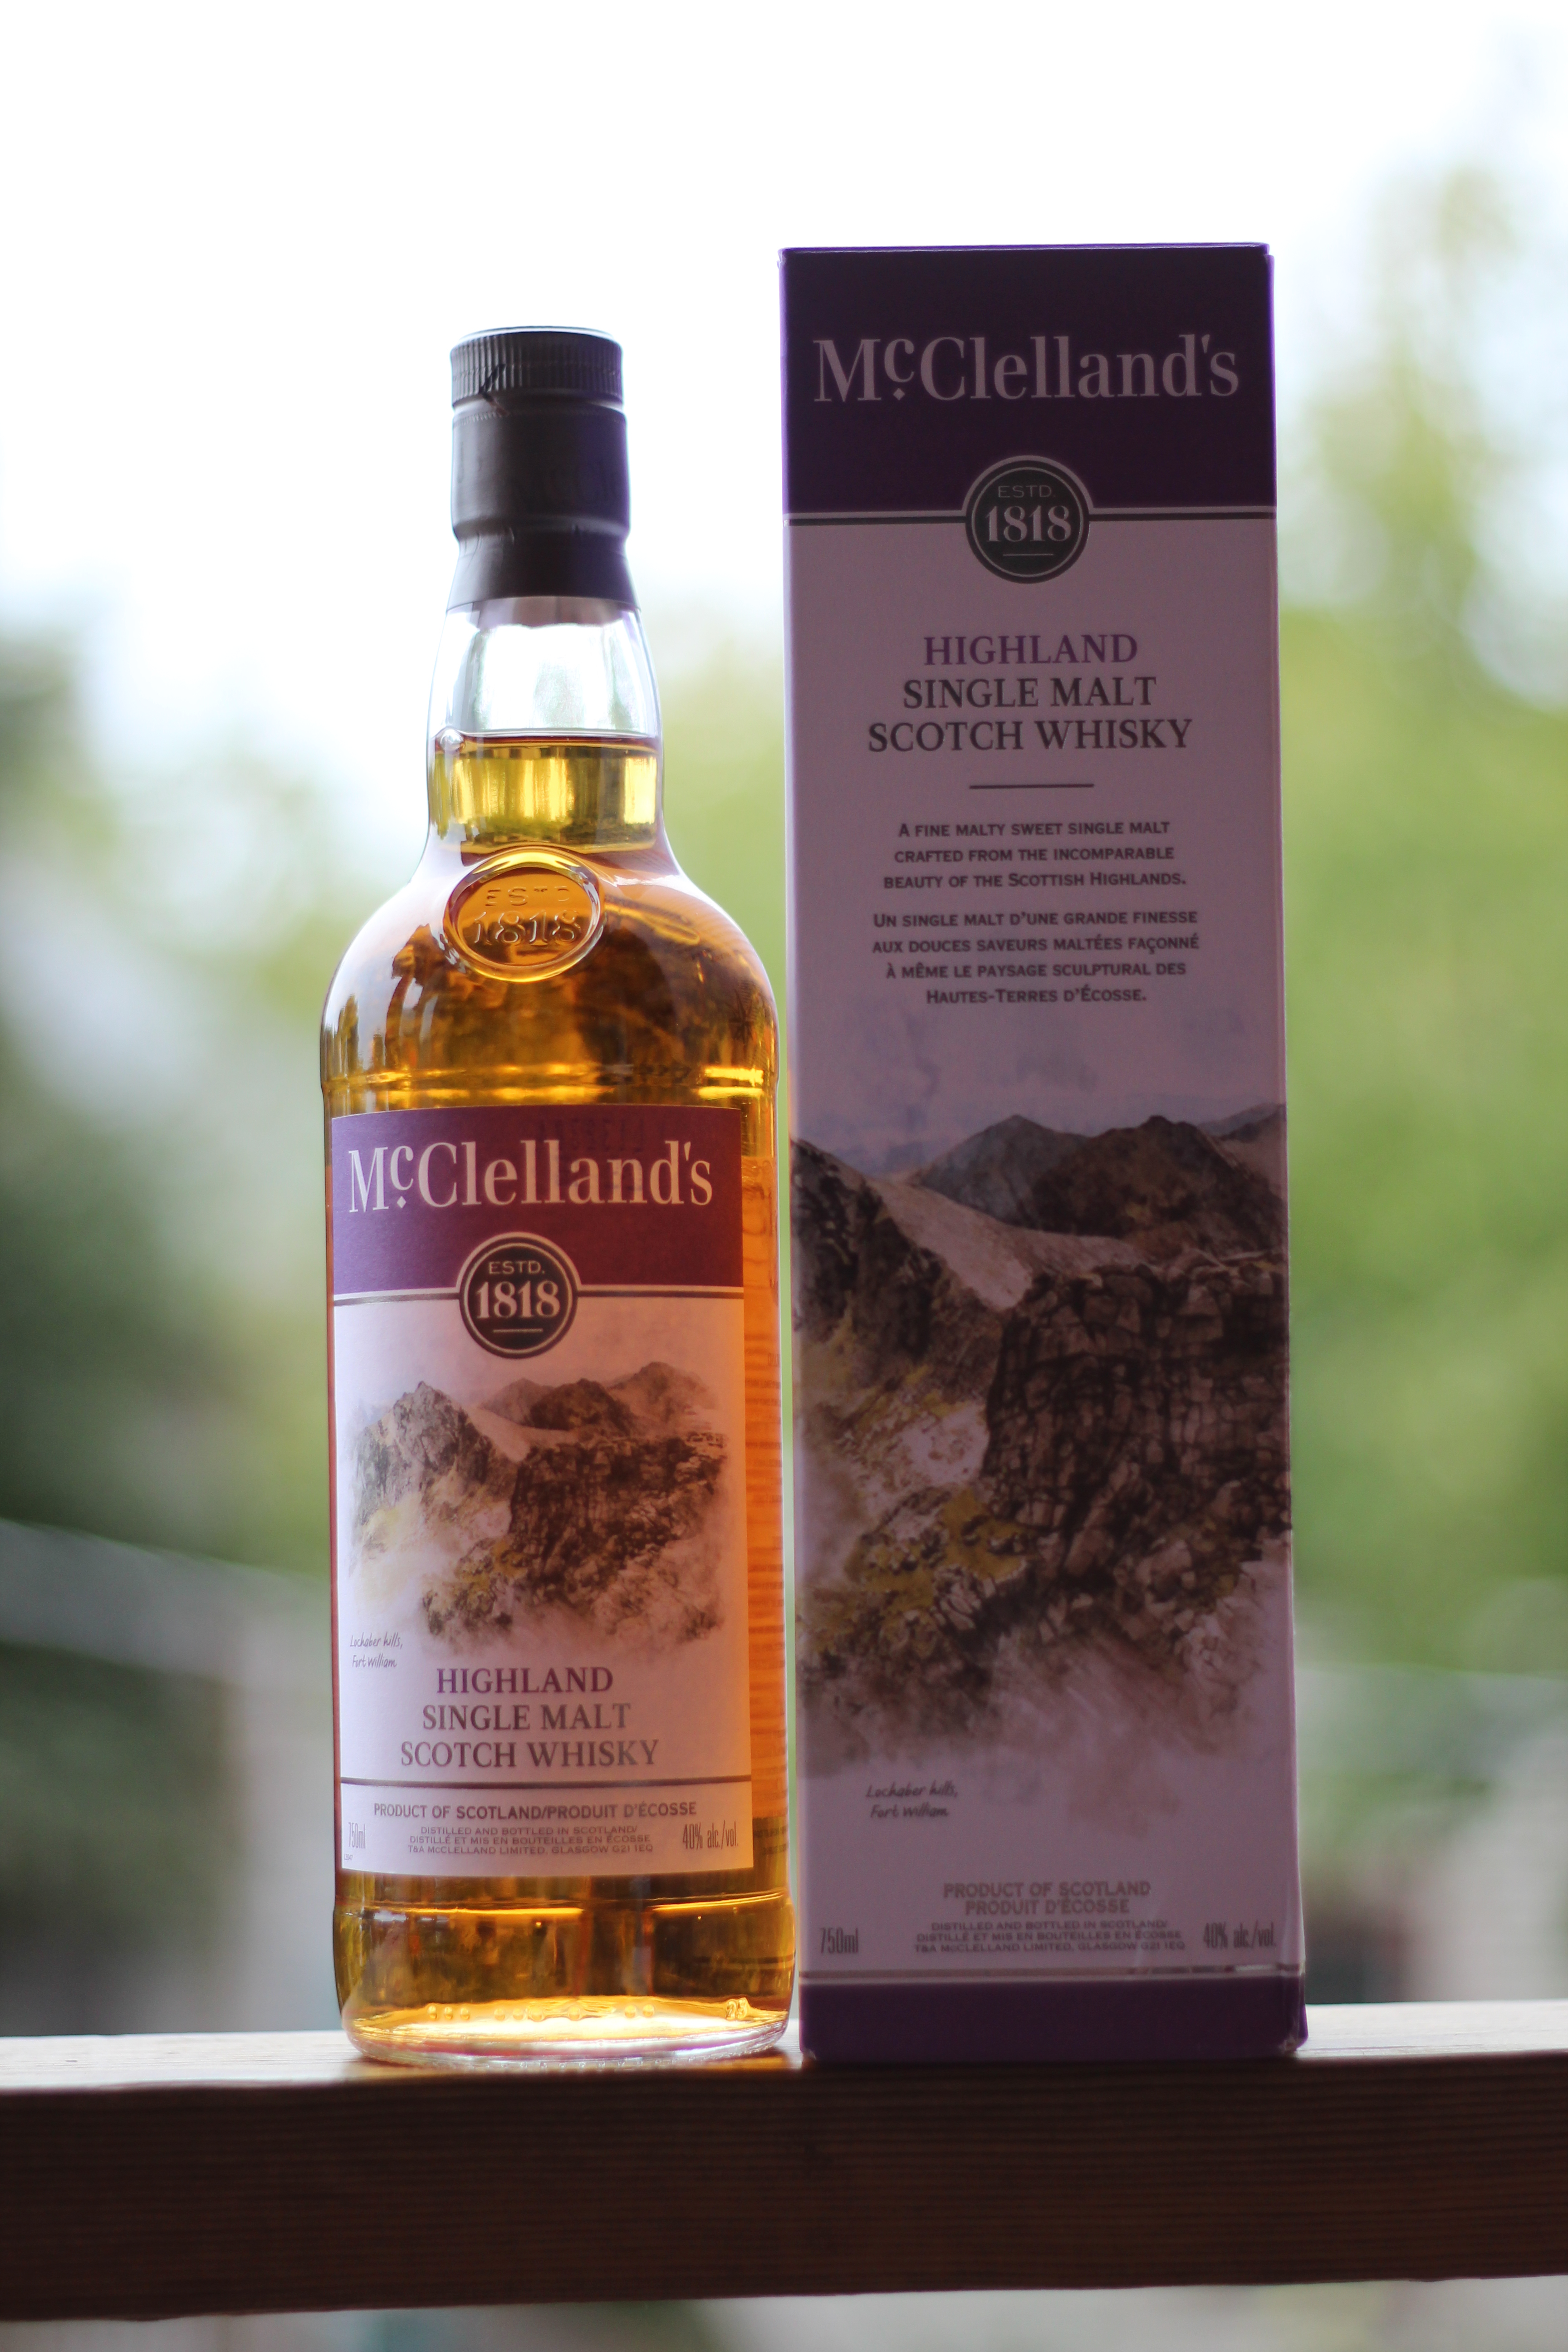 ScotchParty Review #5 – McClelland's Highland with Dan, Ryan, Goran, Ashley, Jared & Bowick